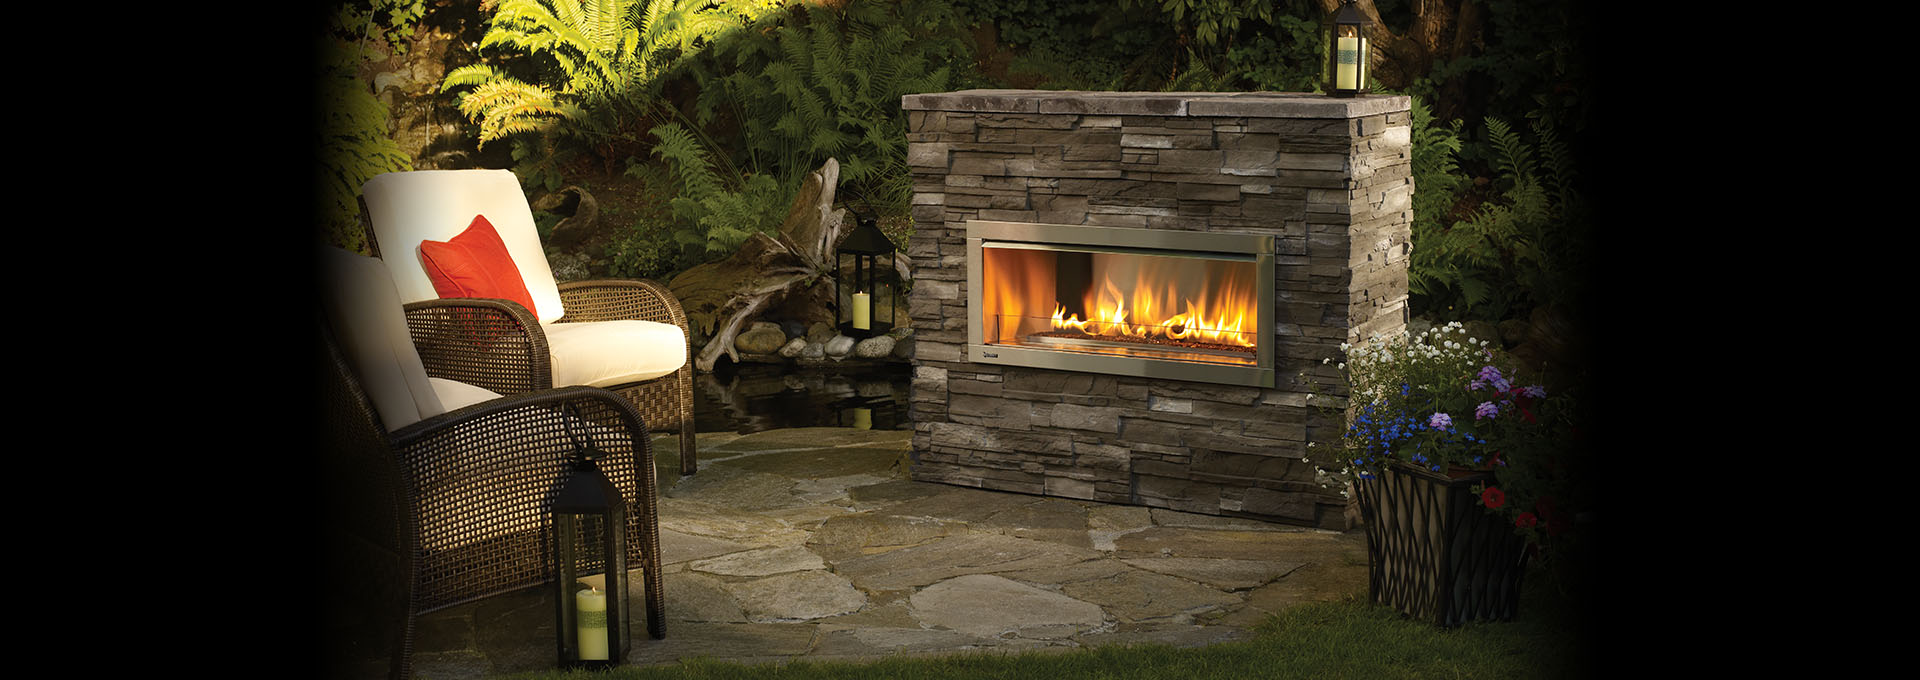 pits fire wood at oakland burning cast heaters fireplace fireplaces com shop outdoors living pl iron outdoor outside lowes patio